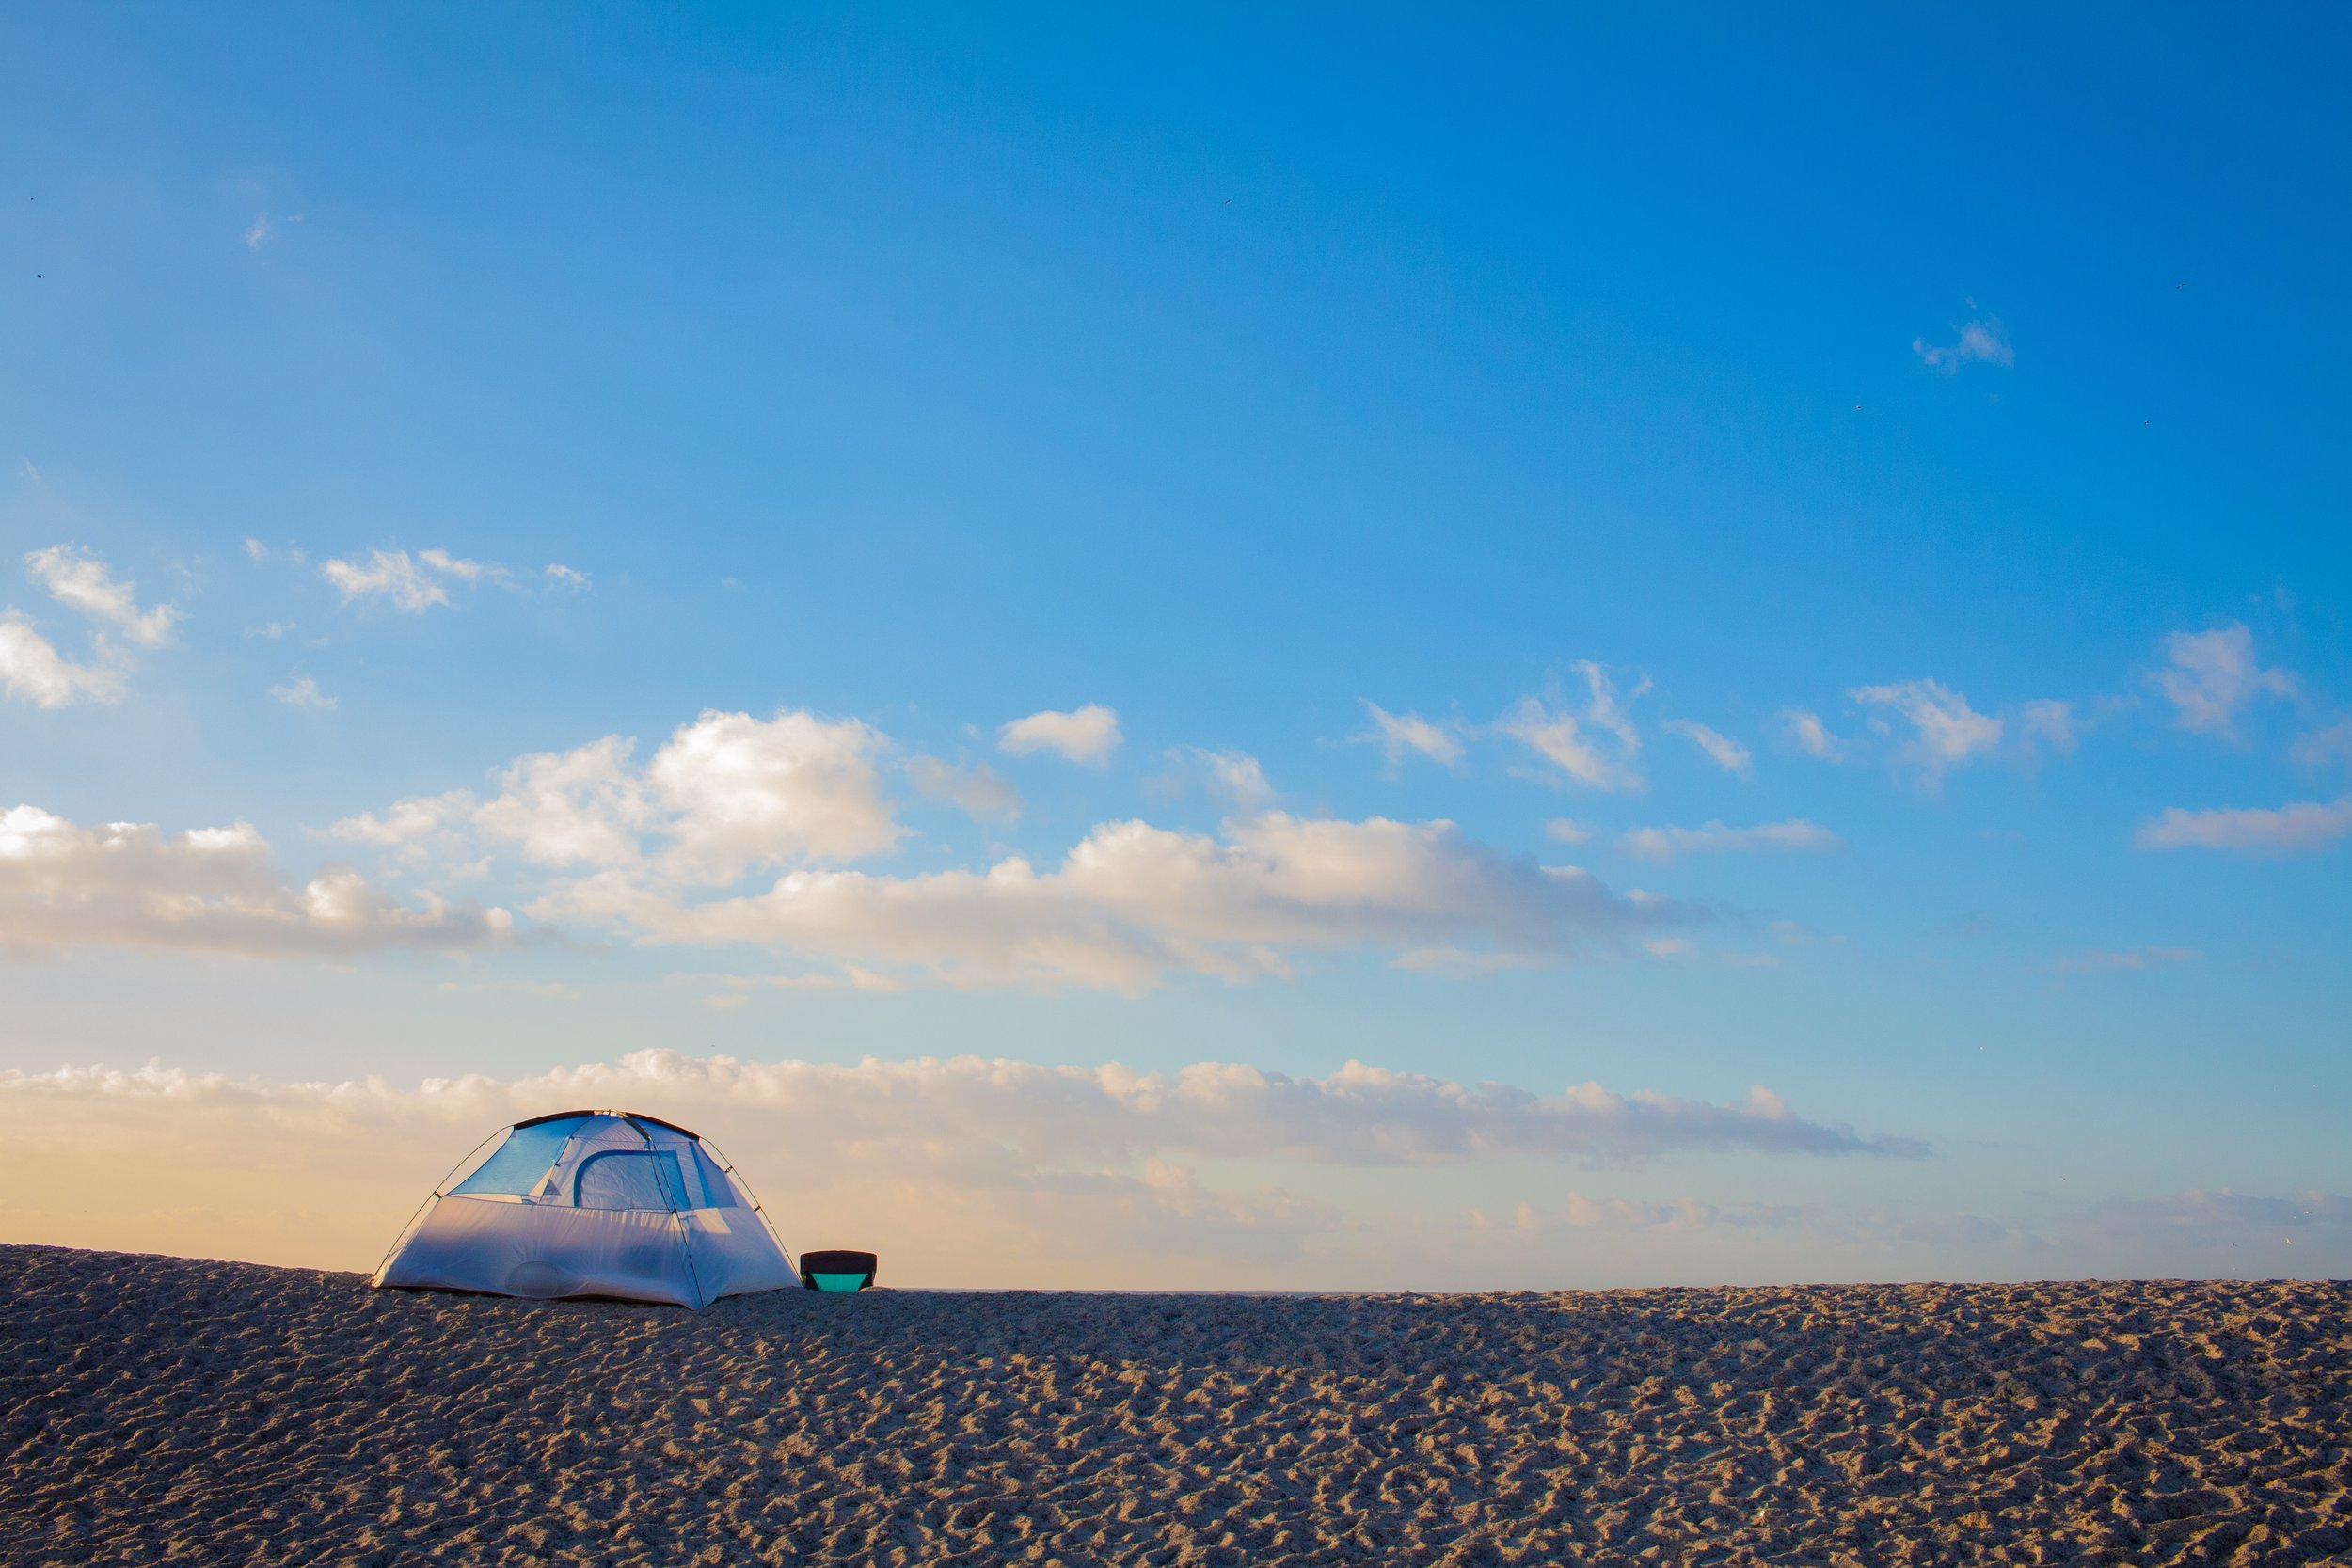 tent on the sand at sunset